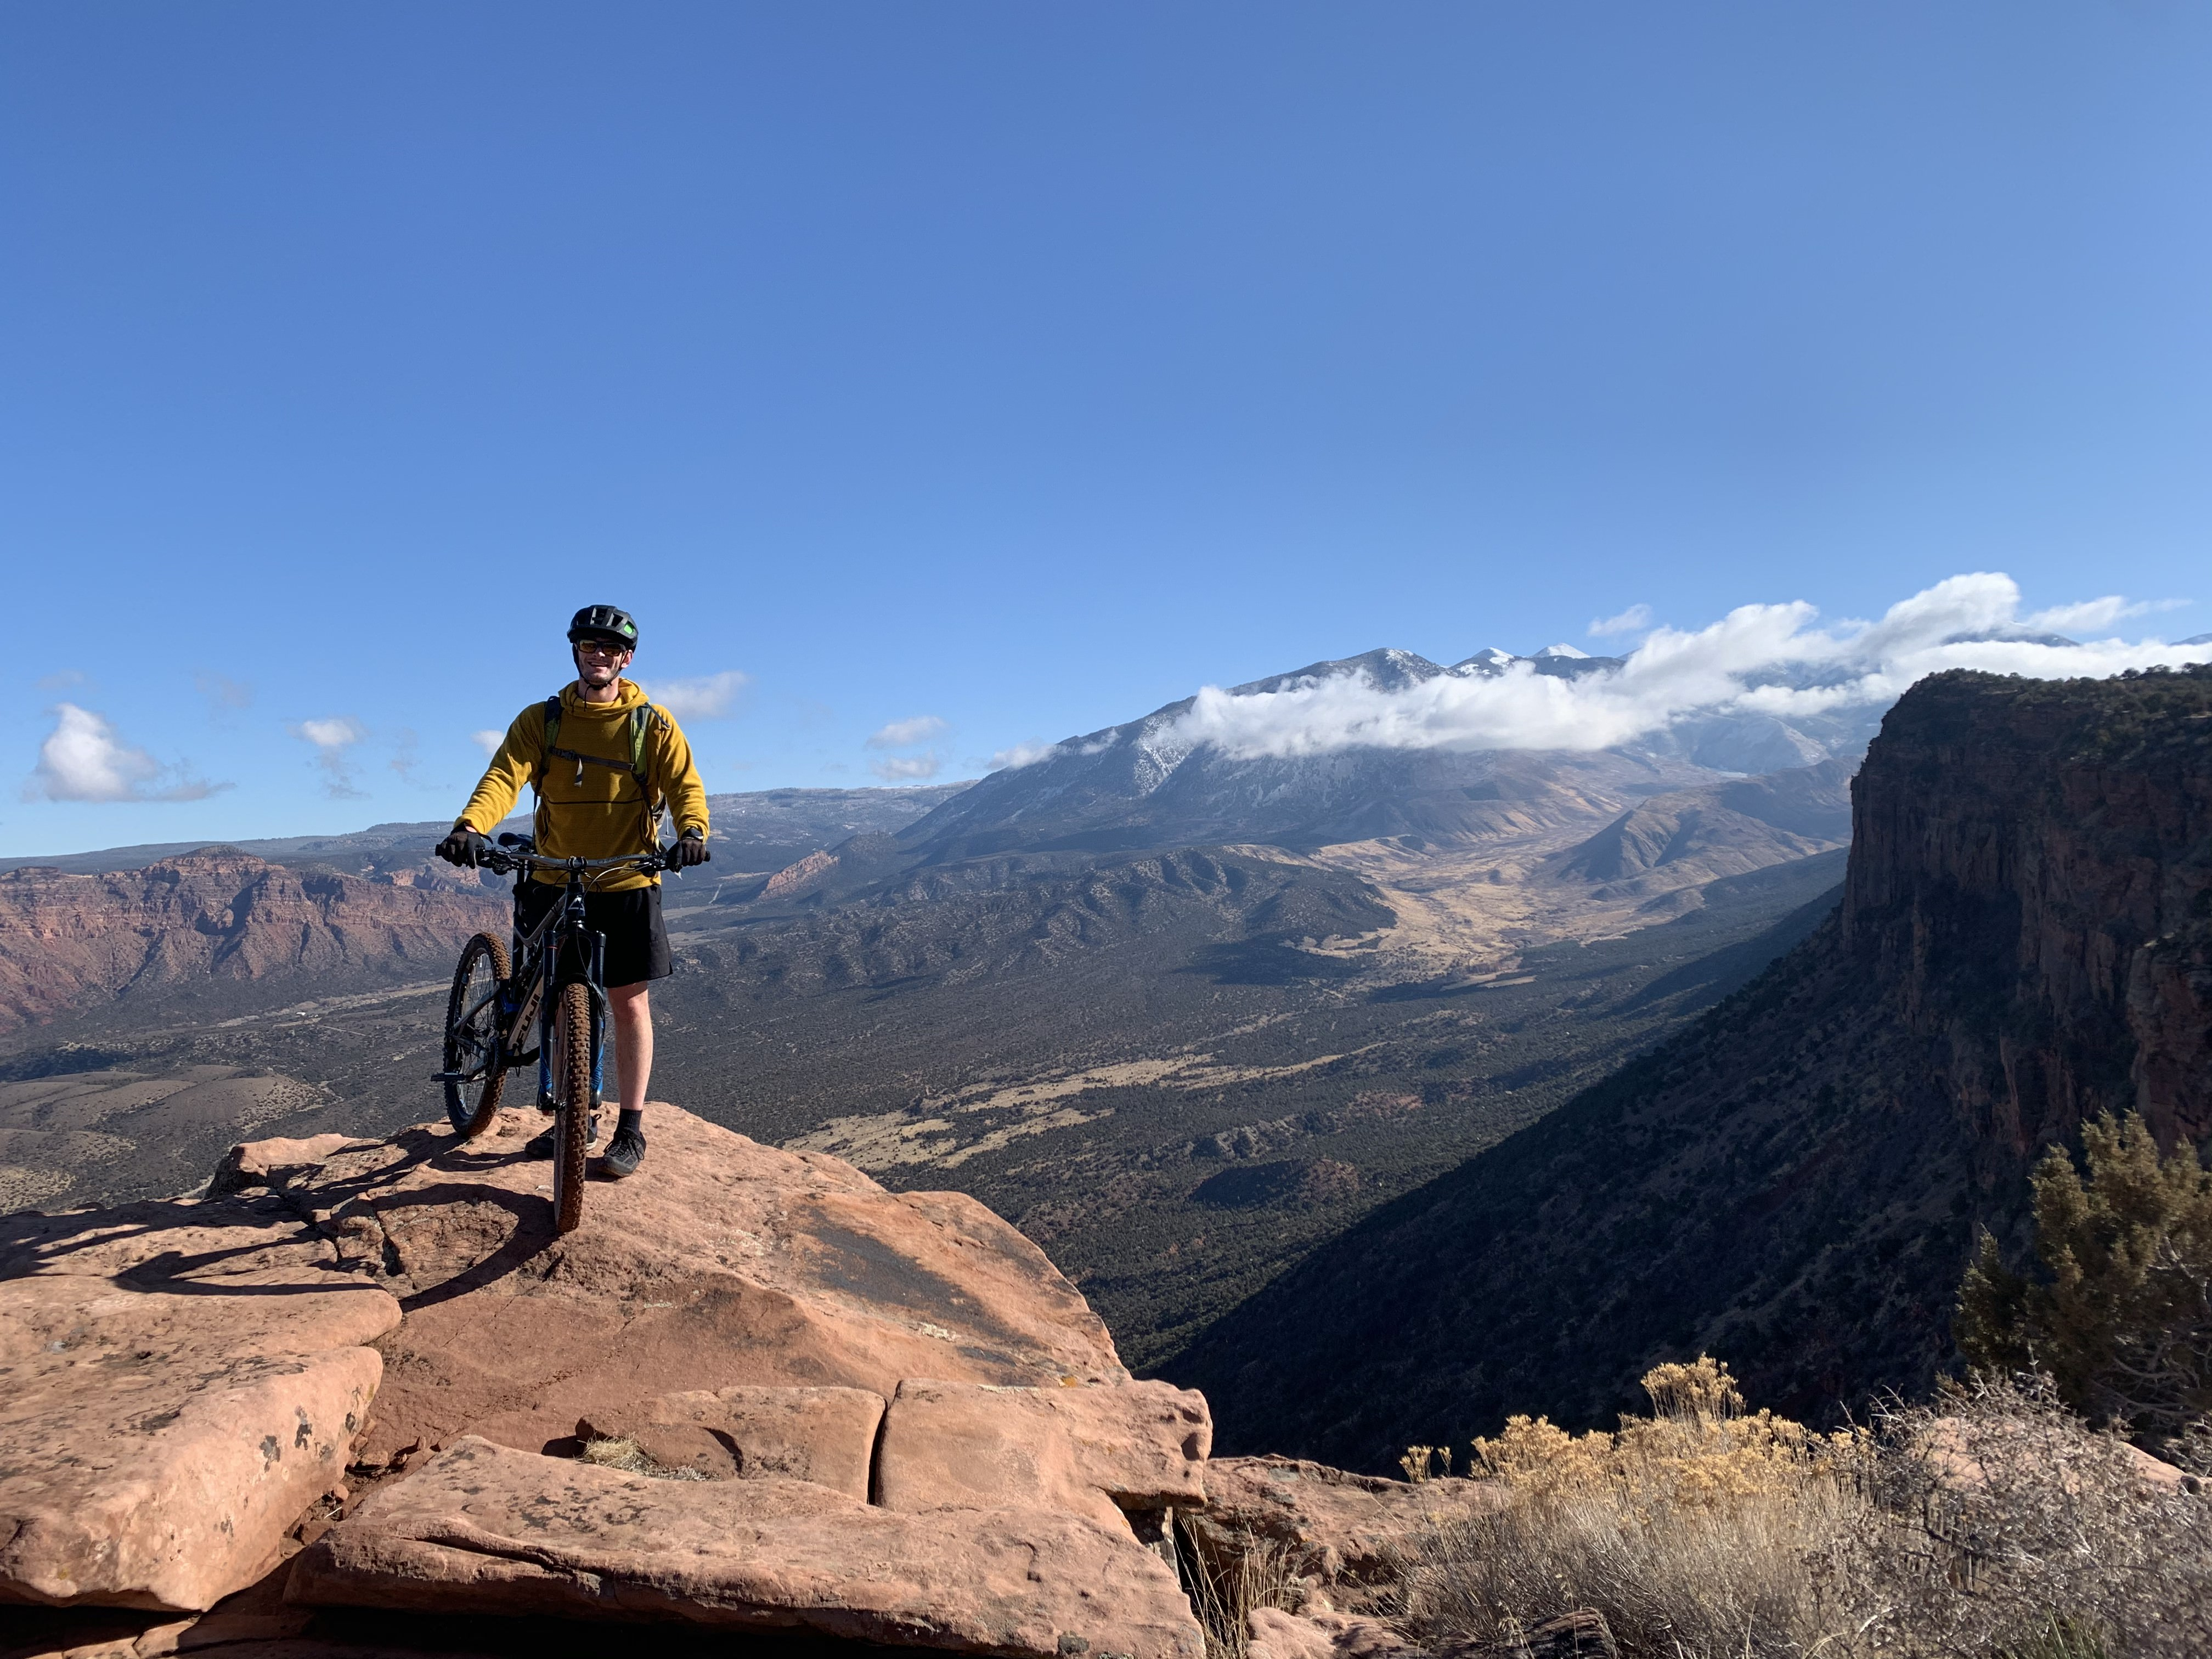 Michael Mountain Biking the Porcupine Rim Trail In Moab, Utah.